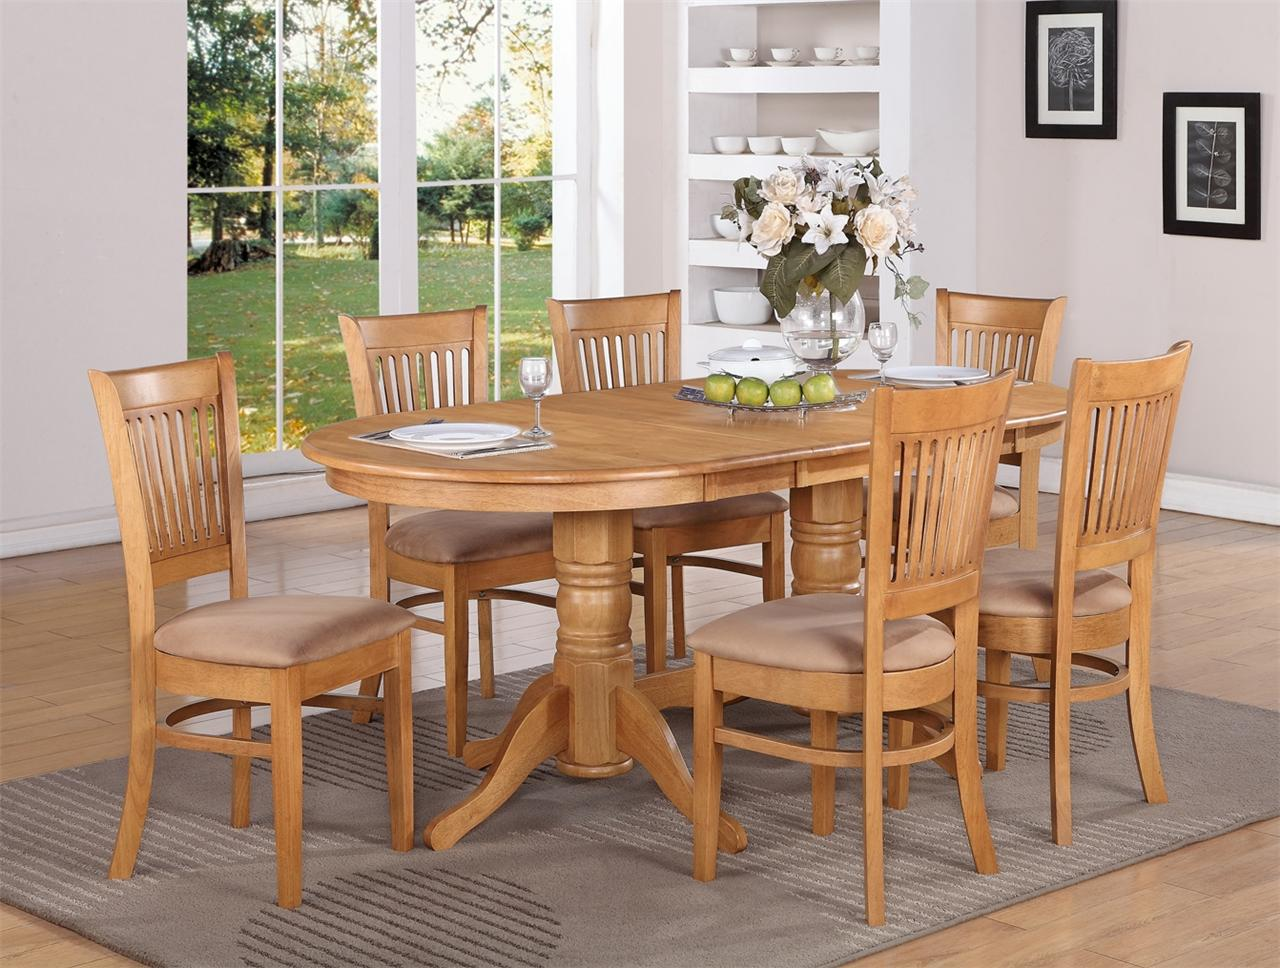 9 PC VANCOUVER OVAL DINETTE KITCHEN DINING SET TABLE w8  : 580589907o from www.ebay.com size 1280 x 968 jpeg 179kB